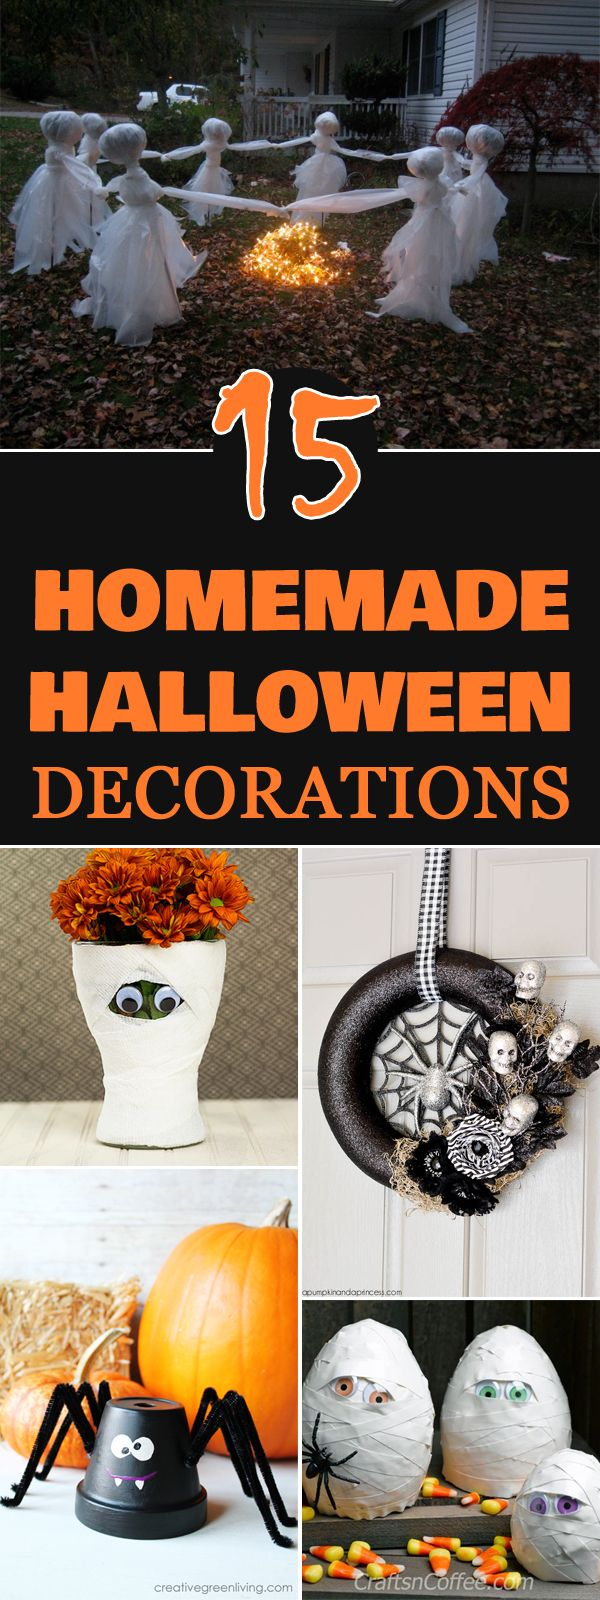 Best 20 homemade halloween decorations ideas on pinterest for Easy halloween outdoor decorating ideas